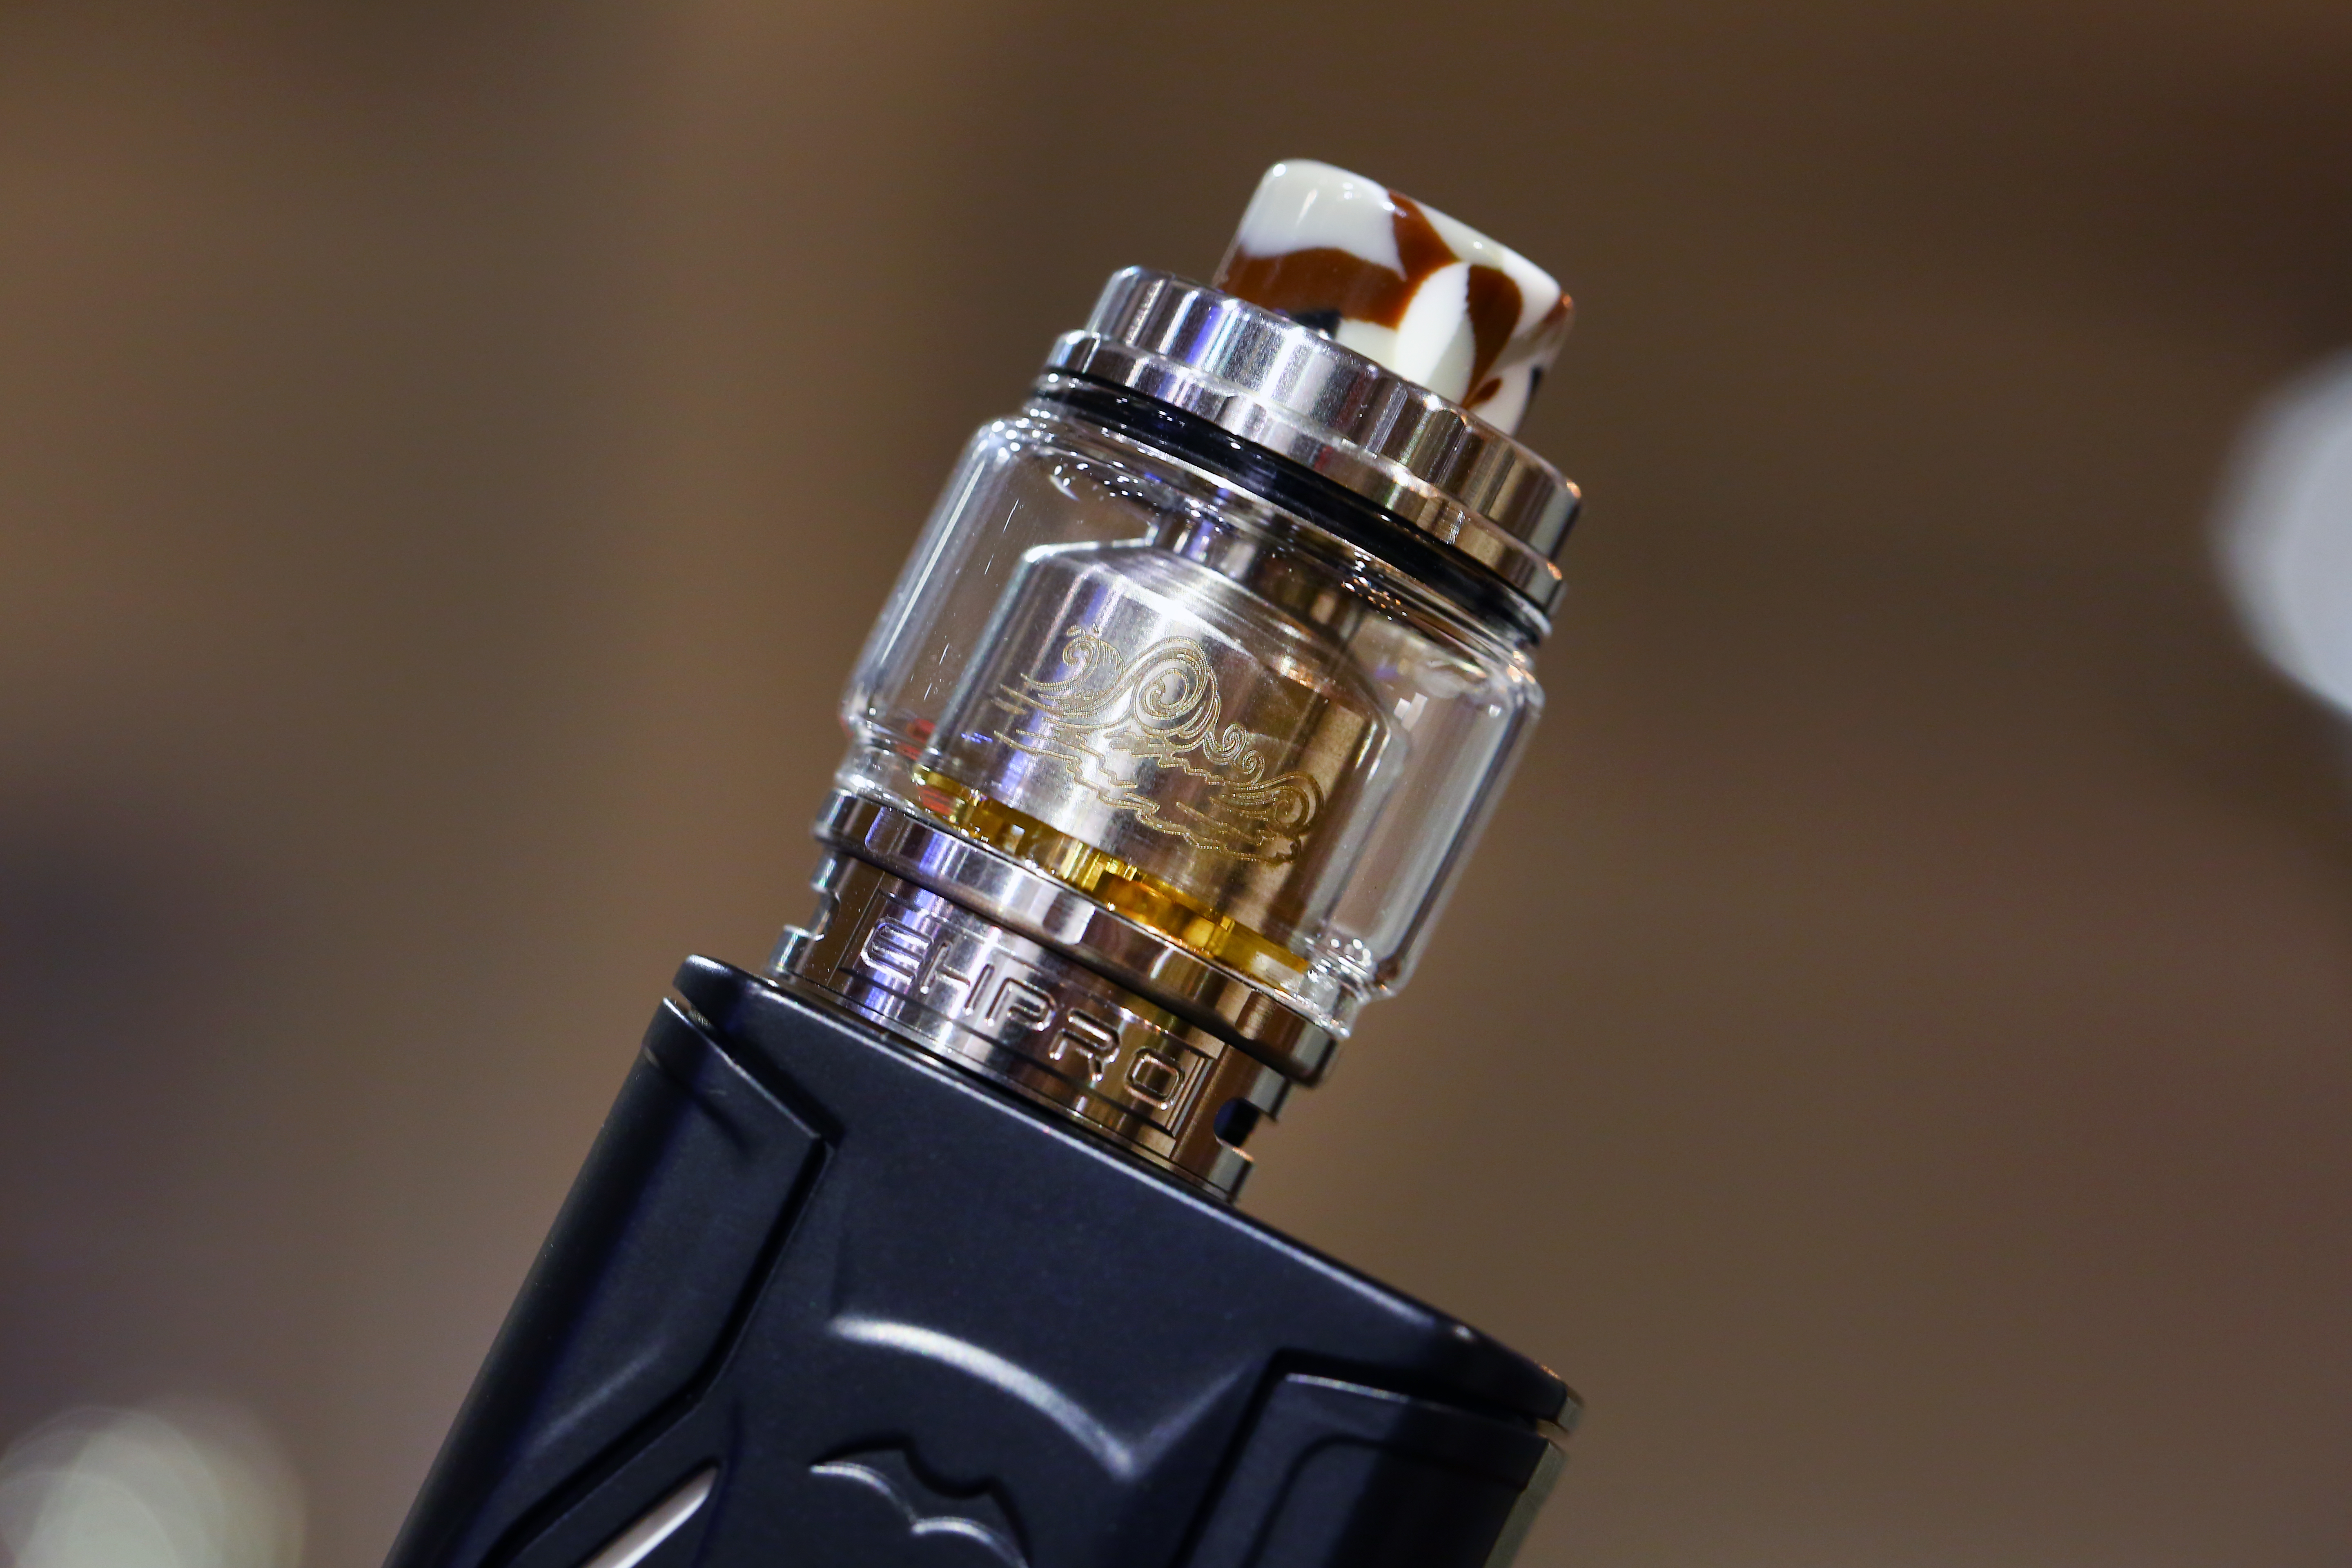 Ehpro Billow X RTA Preview